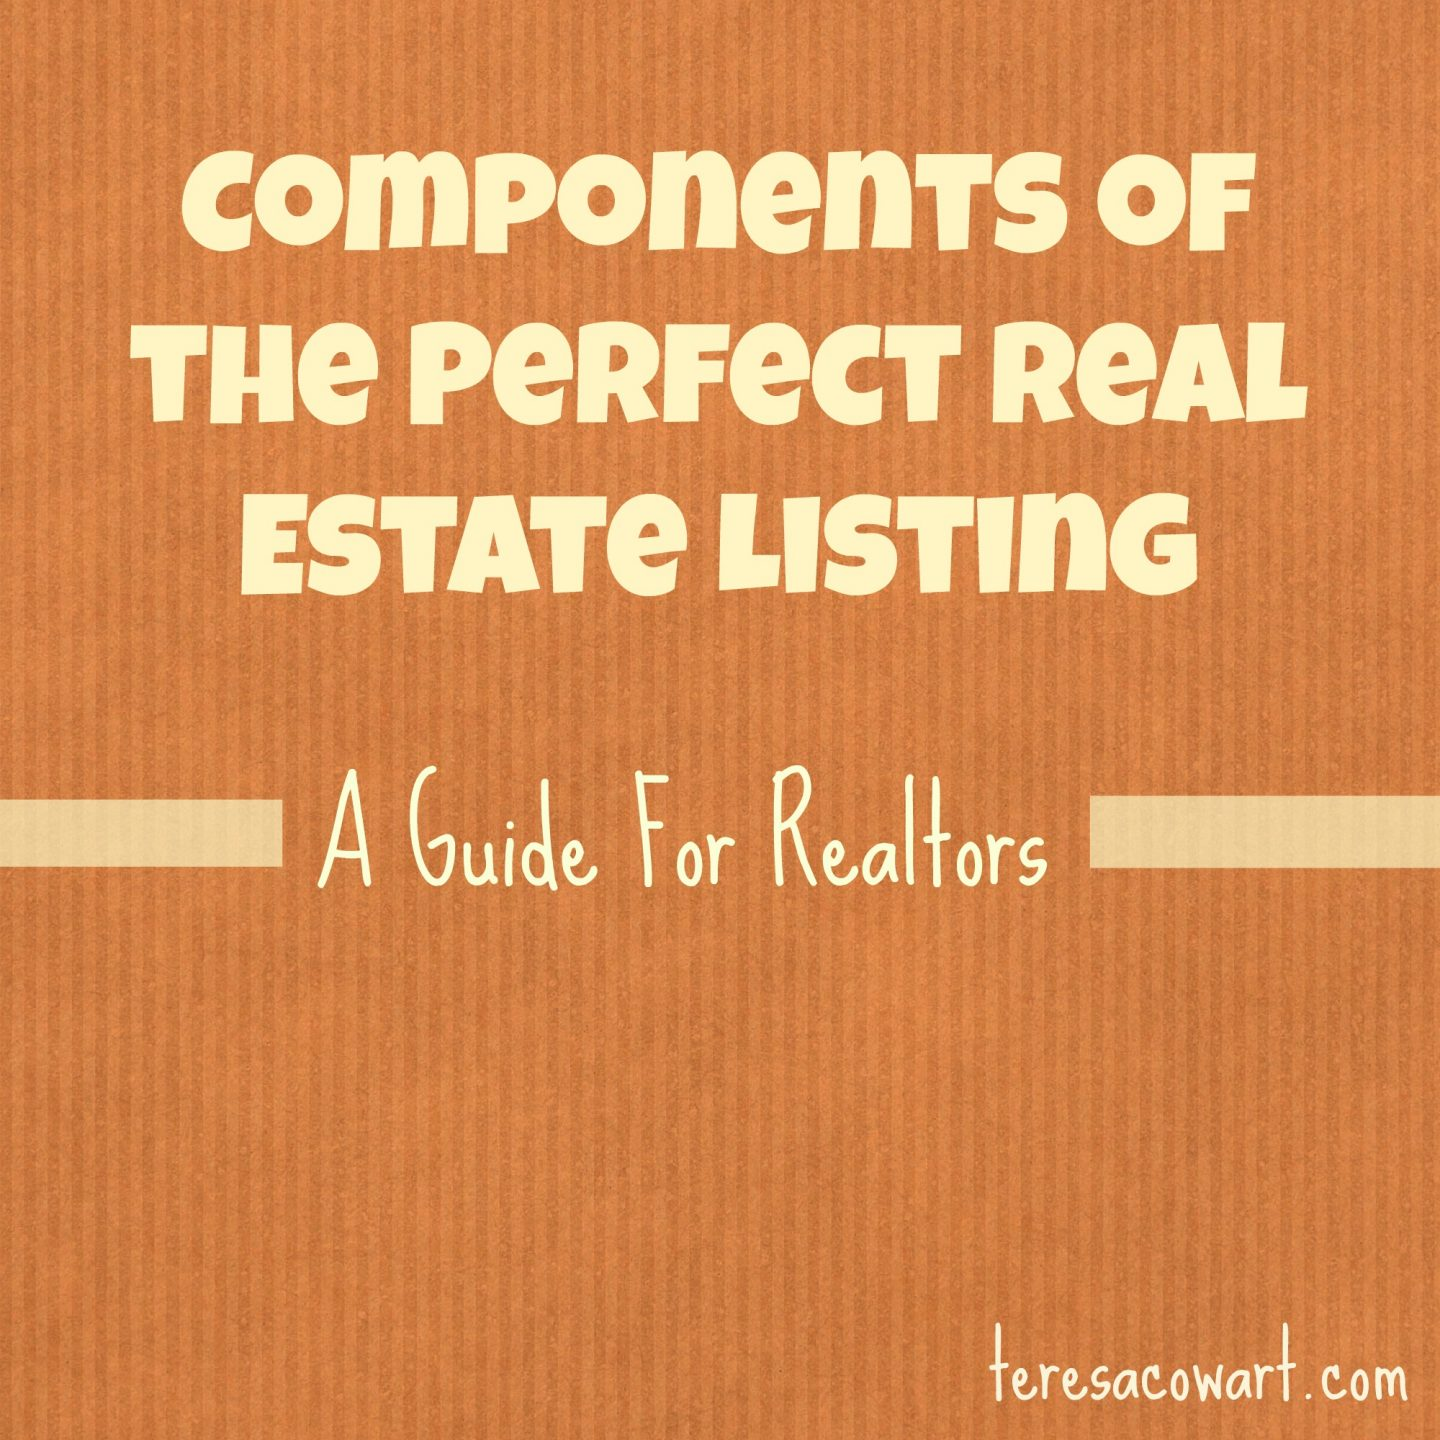 Components of the Perfect Real Estate Listing